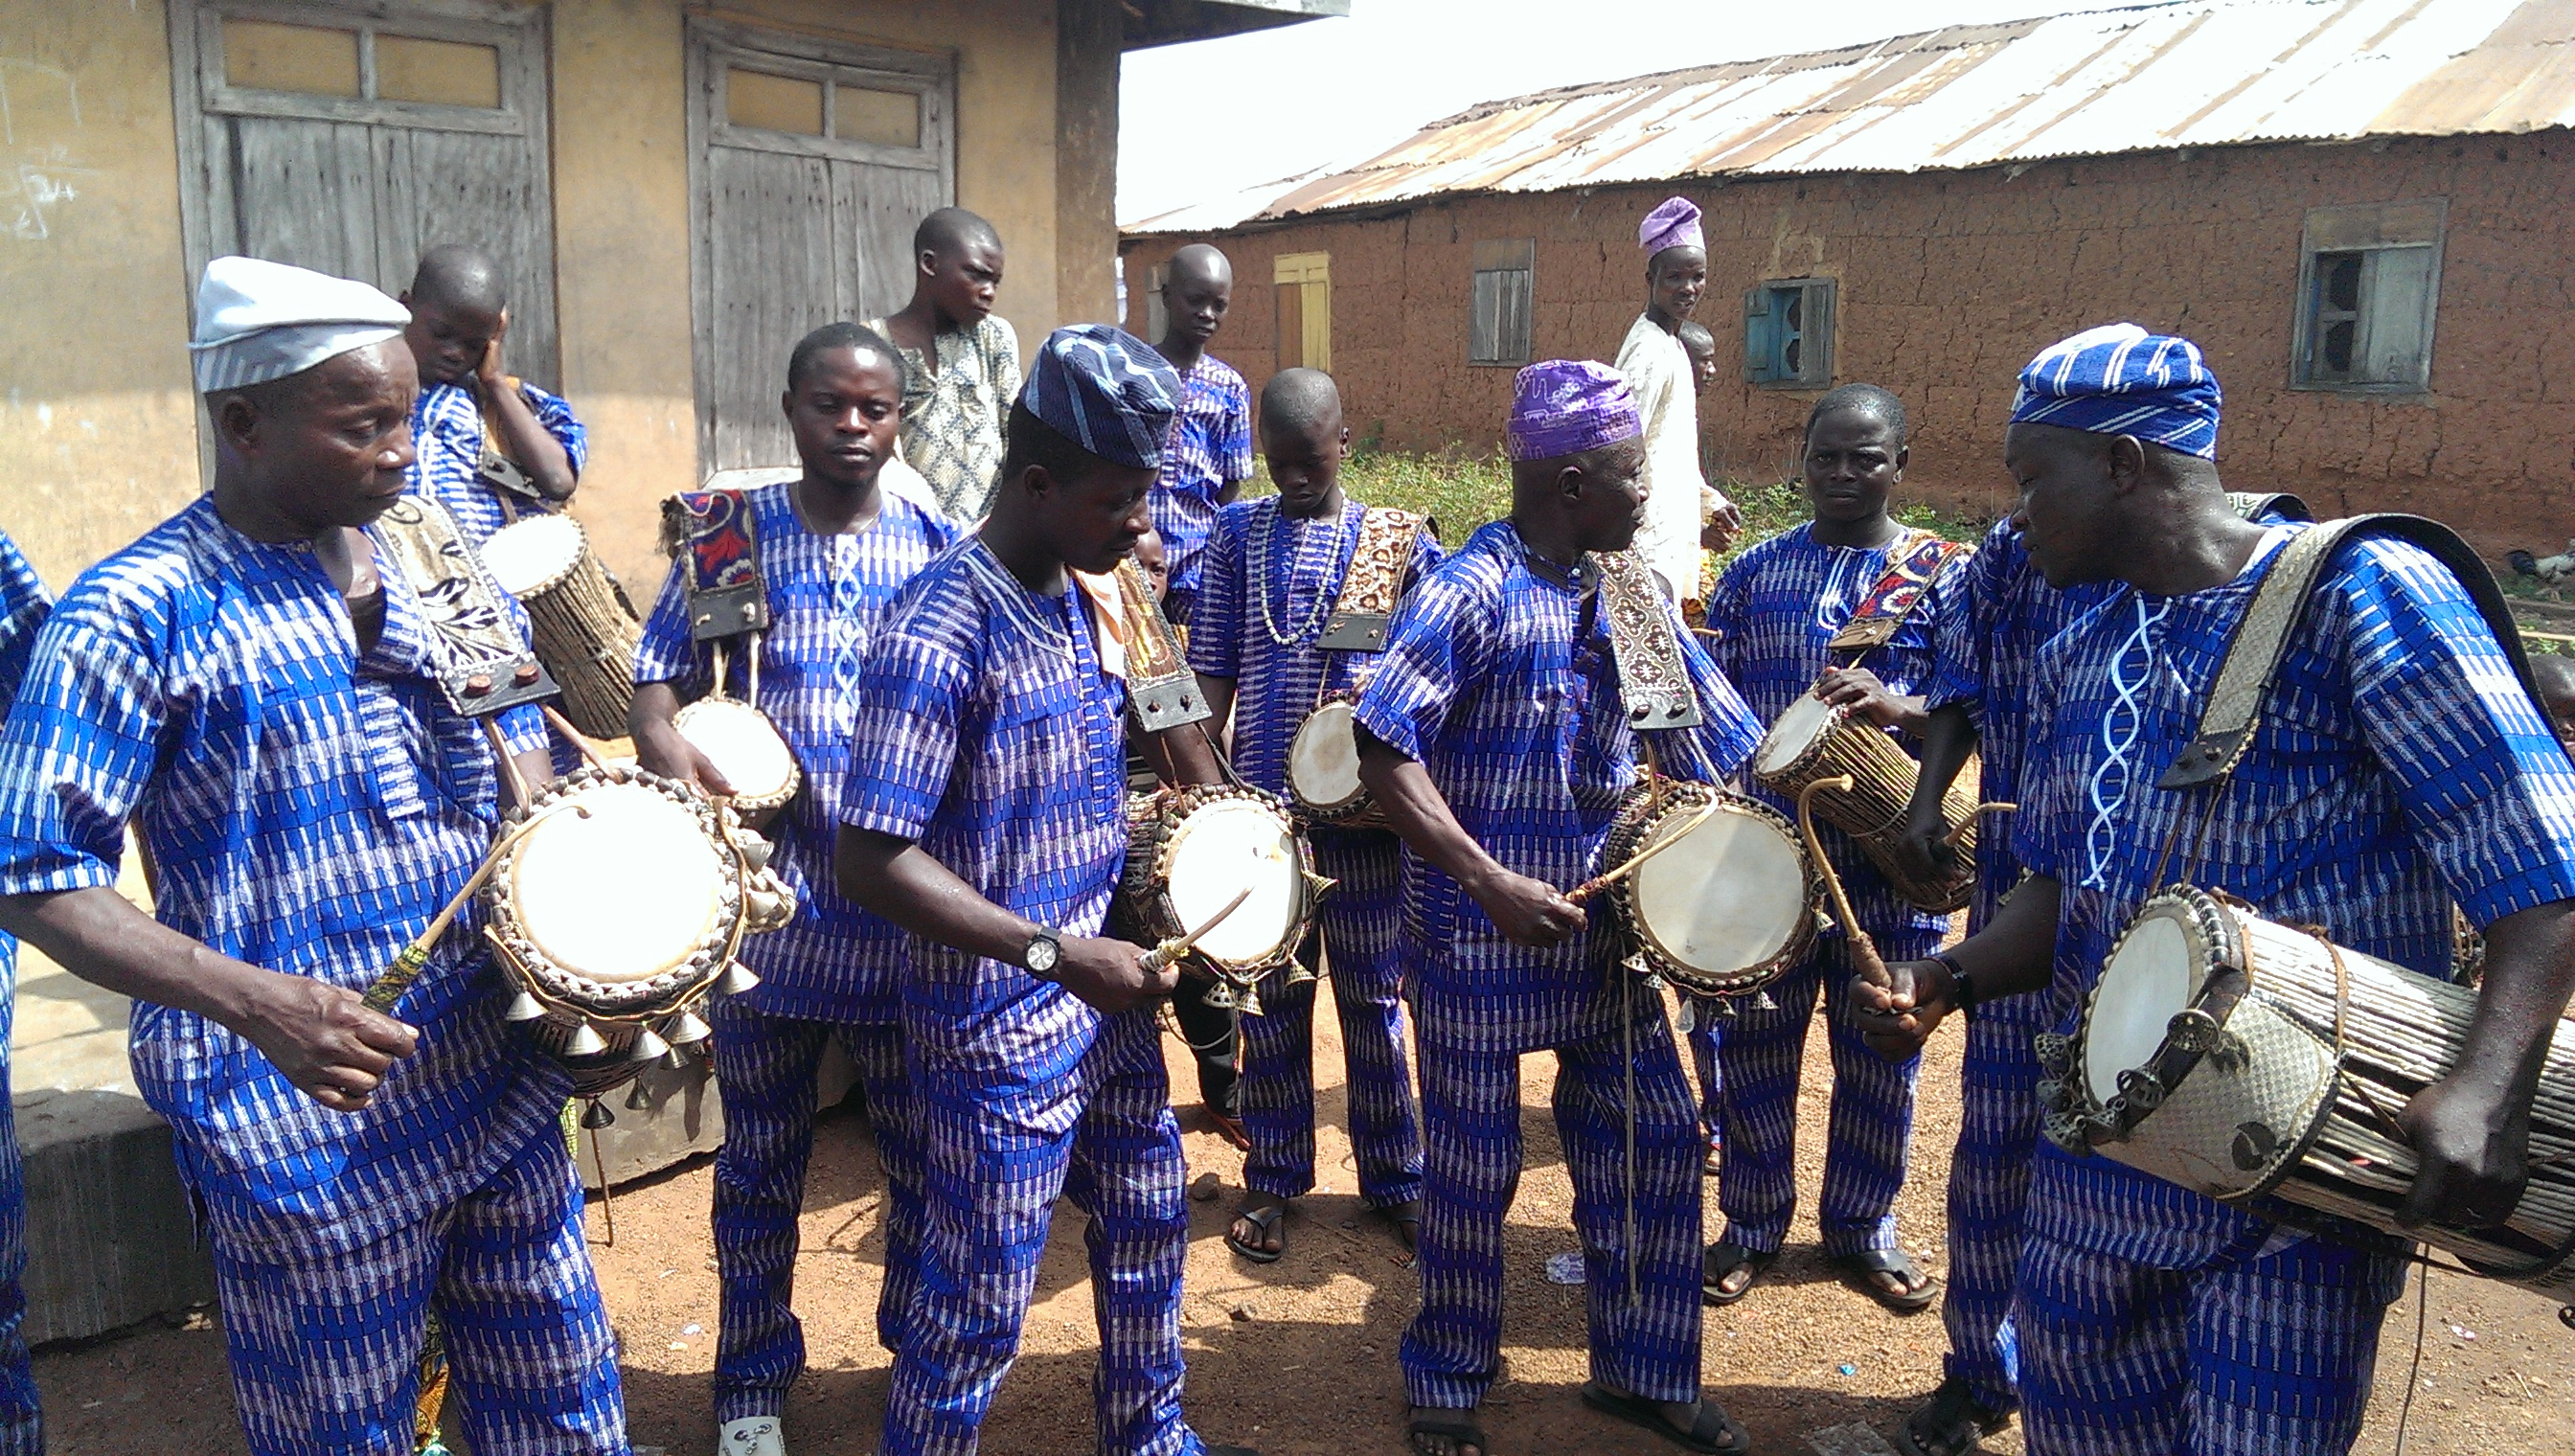 'Talking Drum' Shown to Accurately Mimic Speech Patterns of West African Language